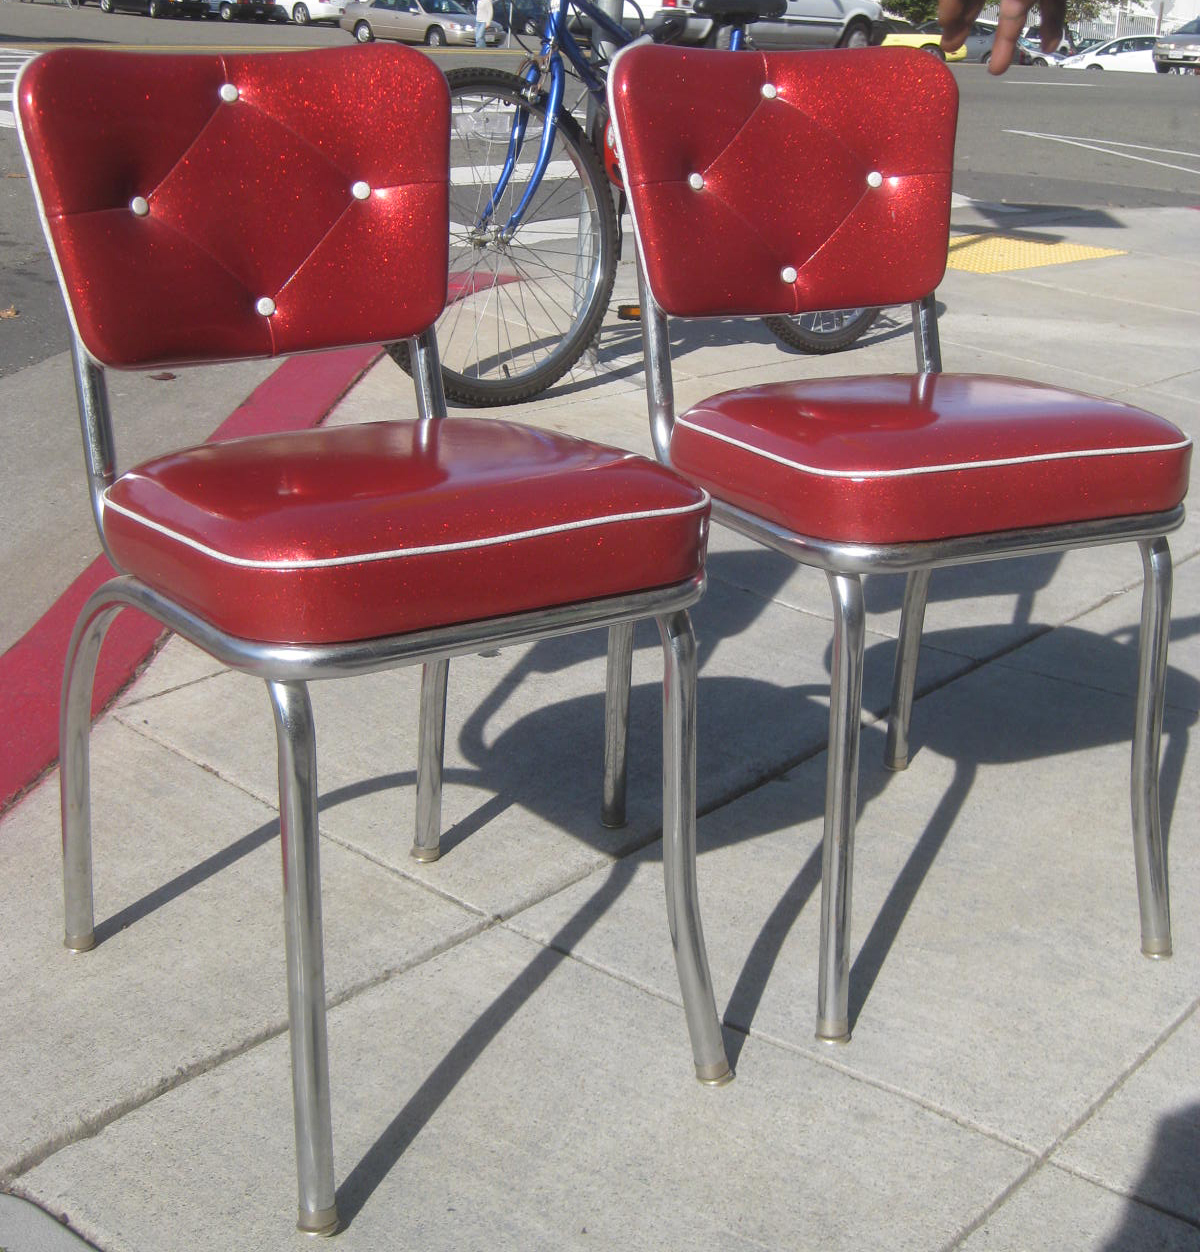 UHURU FURNITURE & COLLECTIBLES SOLD Two Retro Red